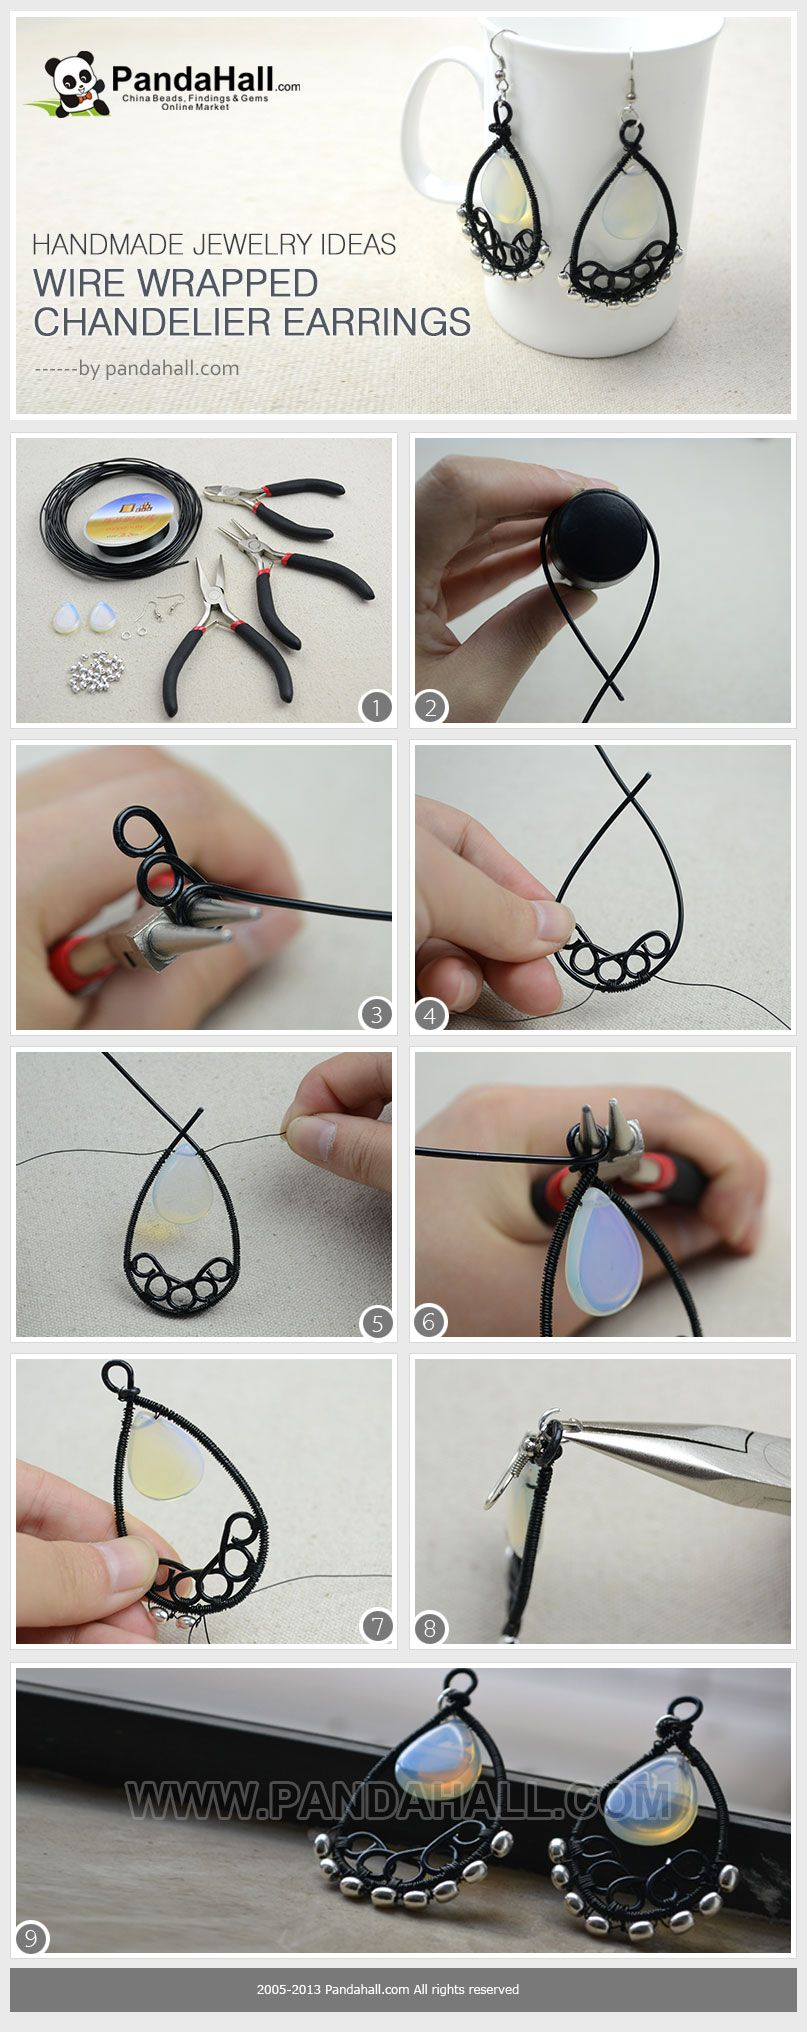 The piece of handmade jewelry ideas today is inspired by the famous ...